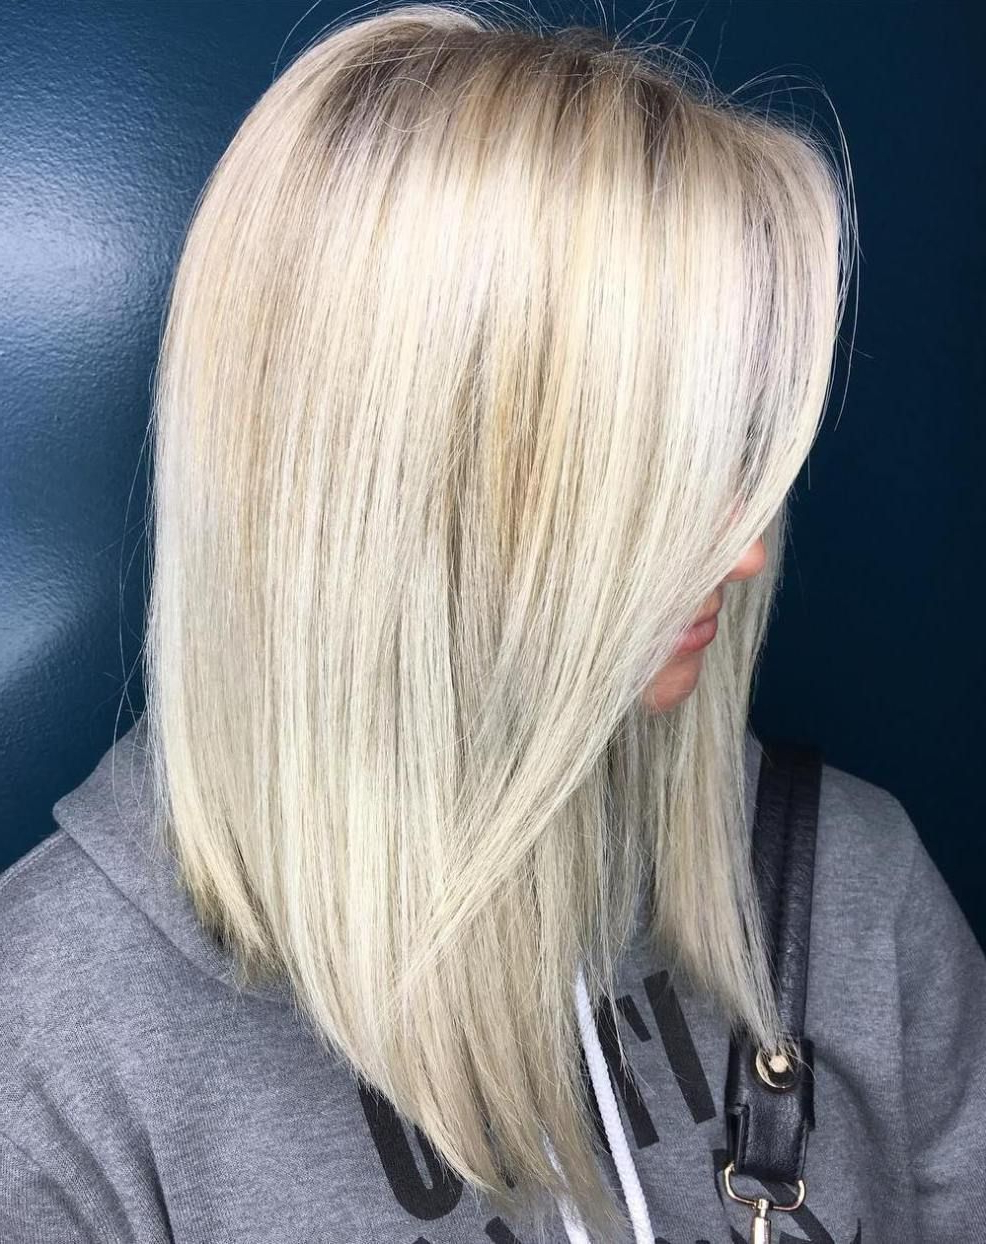 40 Styles With Medium Blonde Hair For Major Inspiration Regarding Modern And Stylish Blonde Bob Haircuts (View 7 of 20)